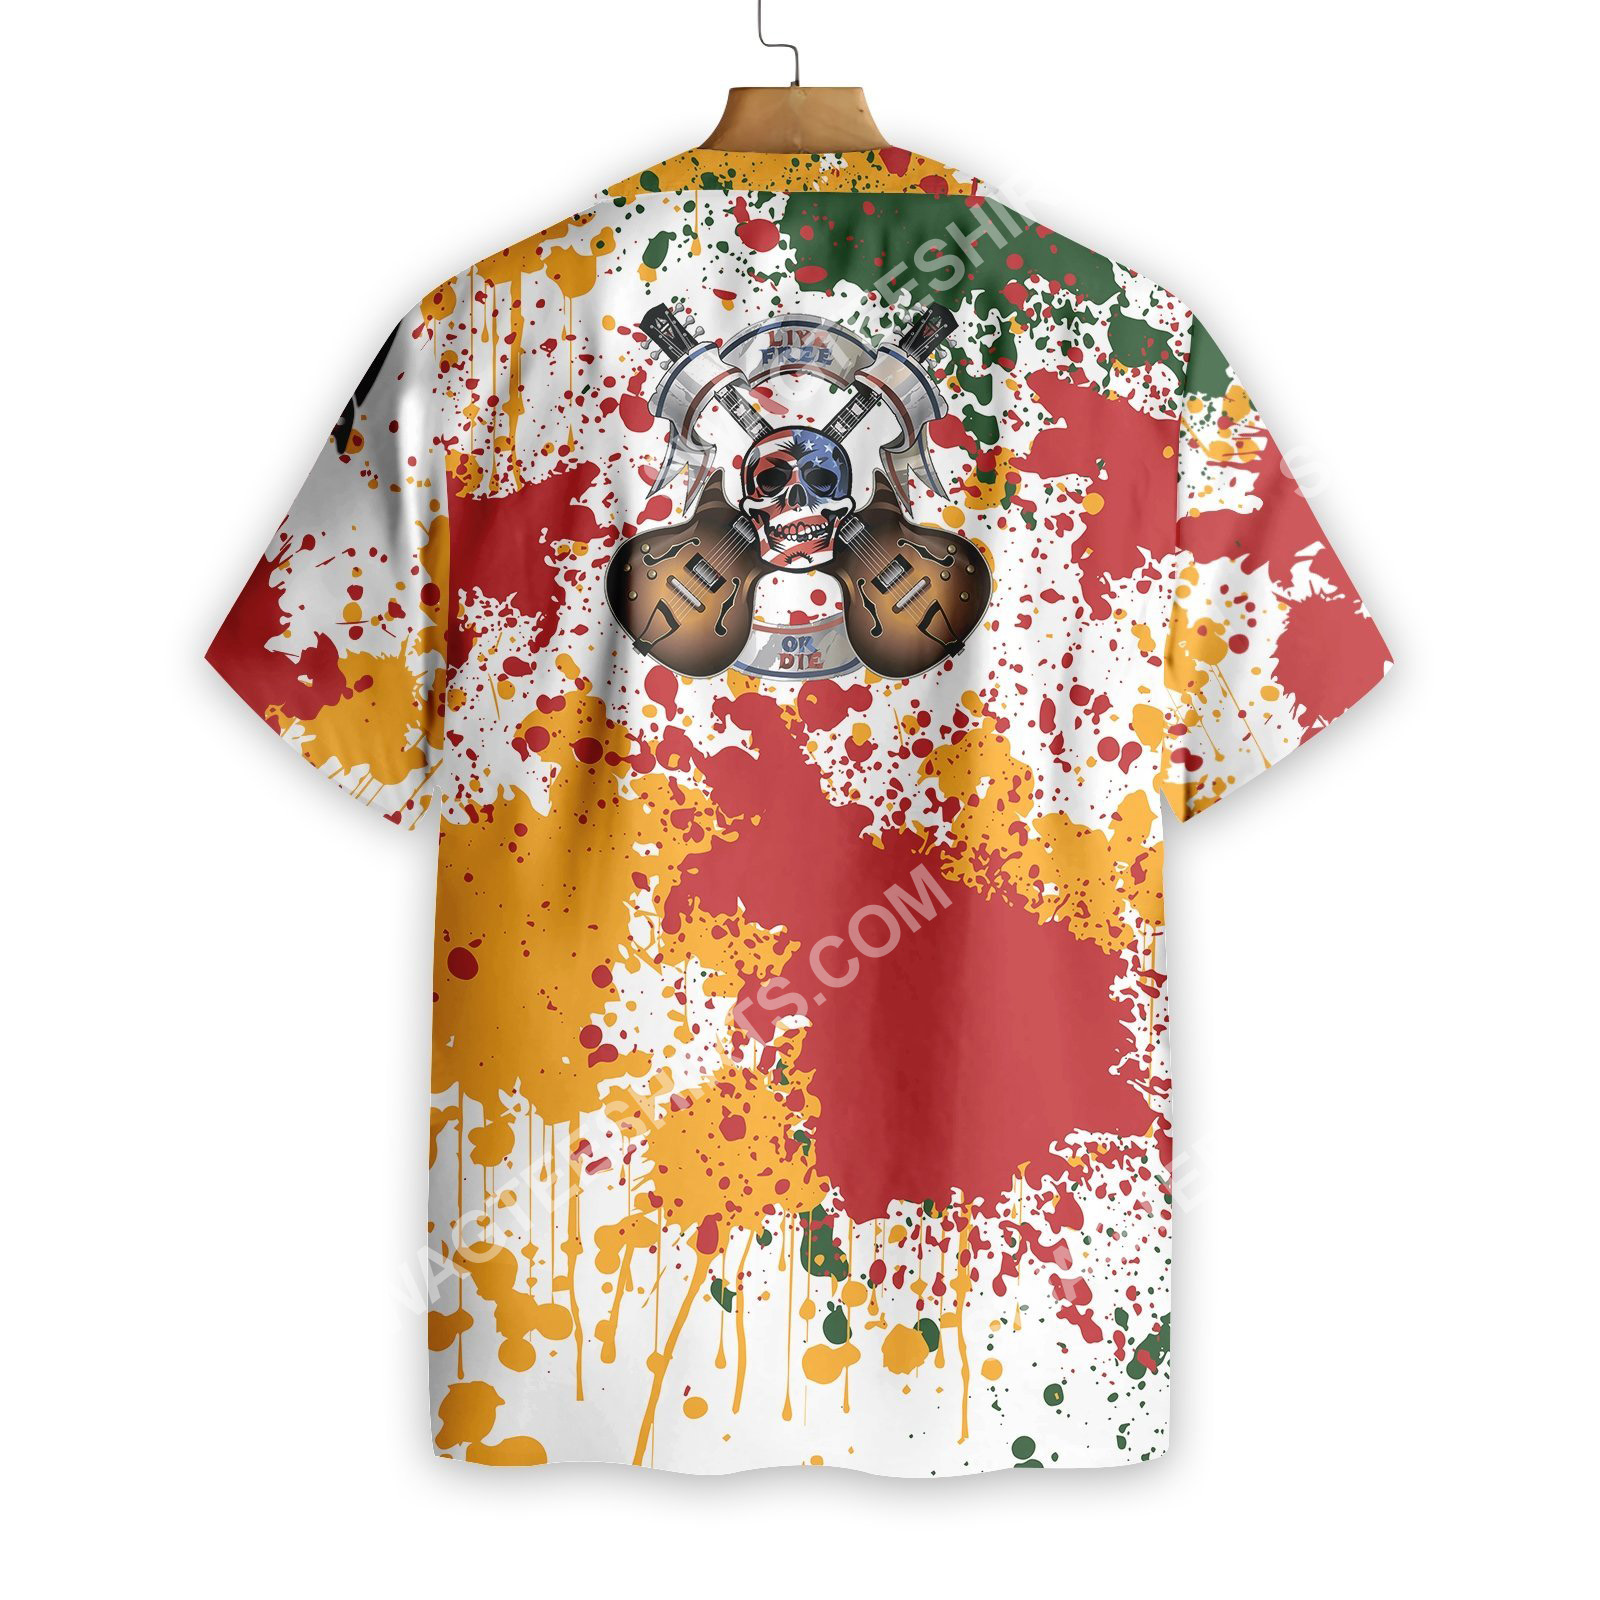 guitar live free or die all over printed hawaiian shirt 4(1)